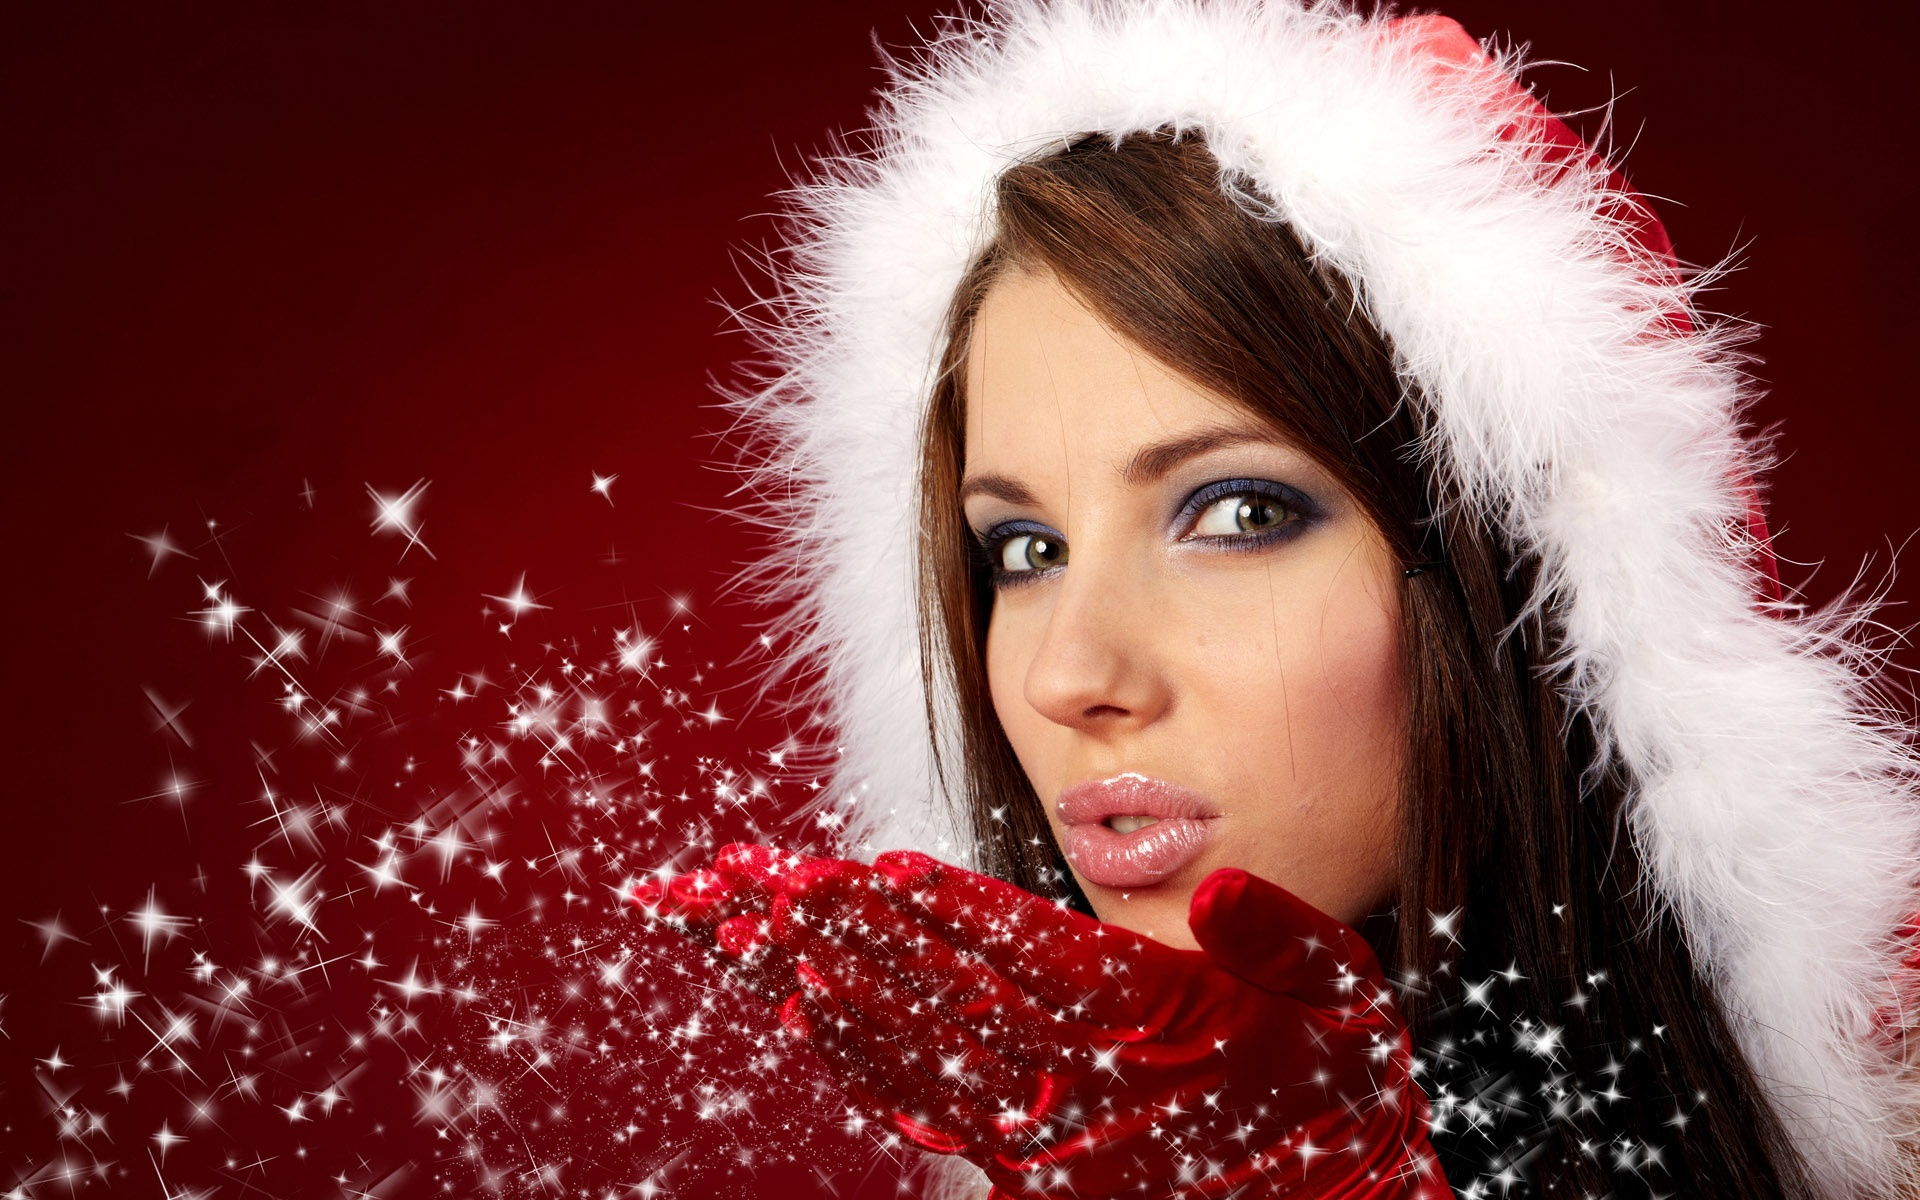 Christmas snow girl 1920 x 1200 download close